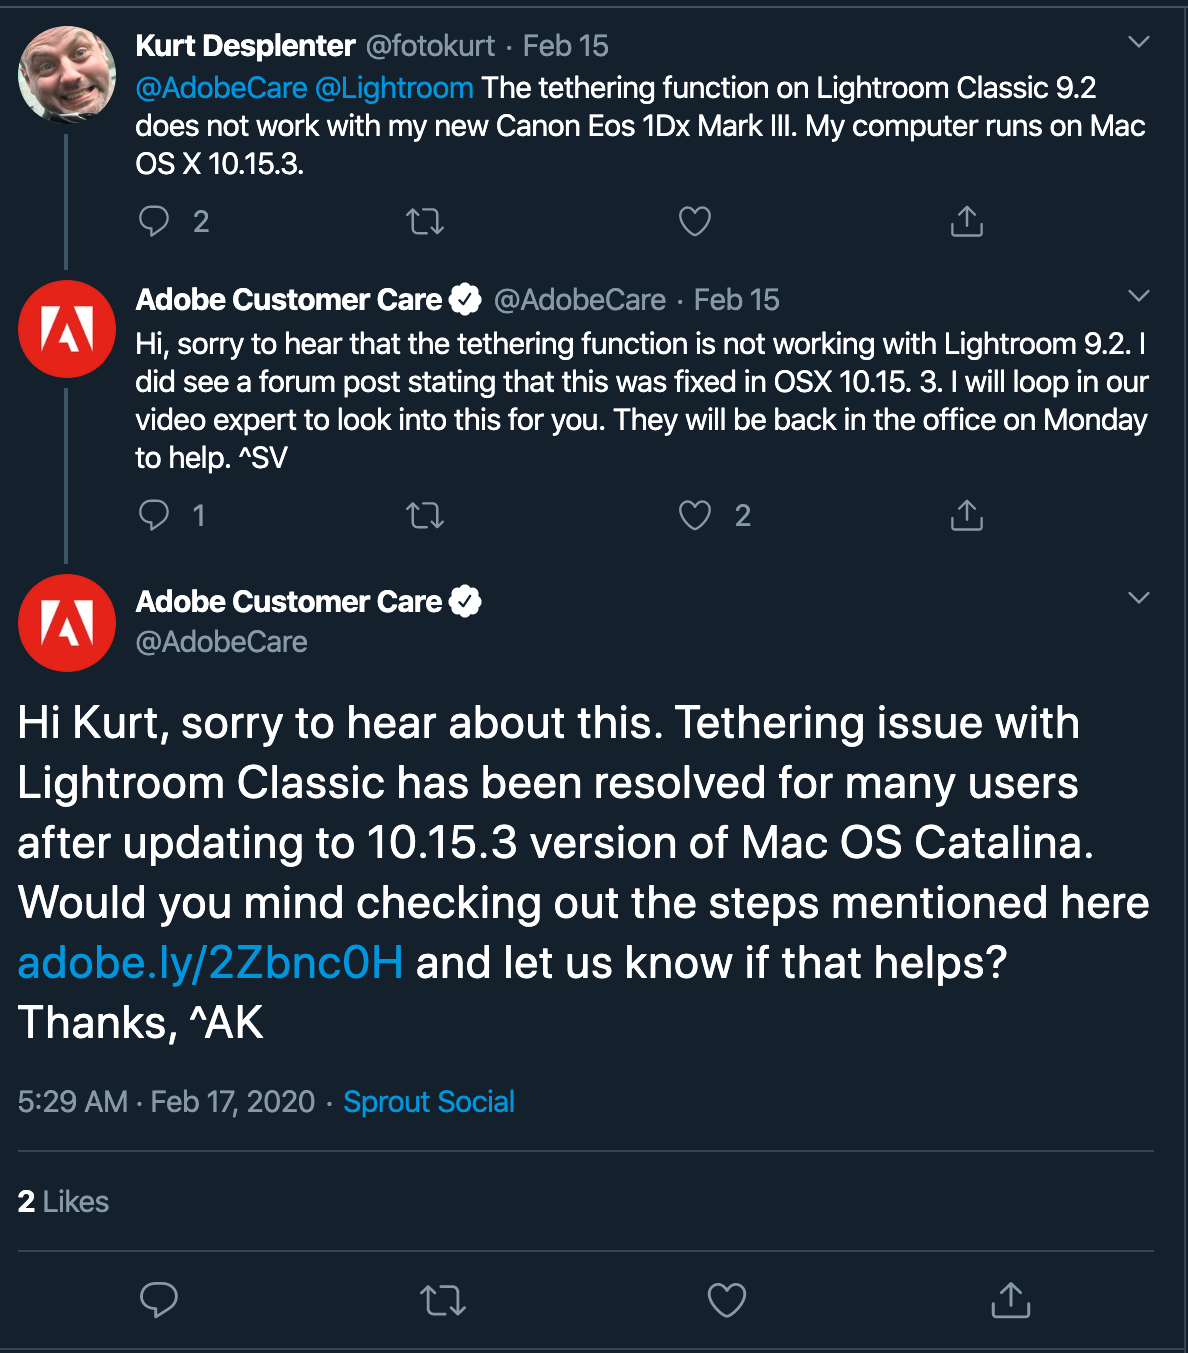 @AdobeCare self-service